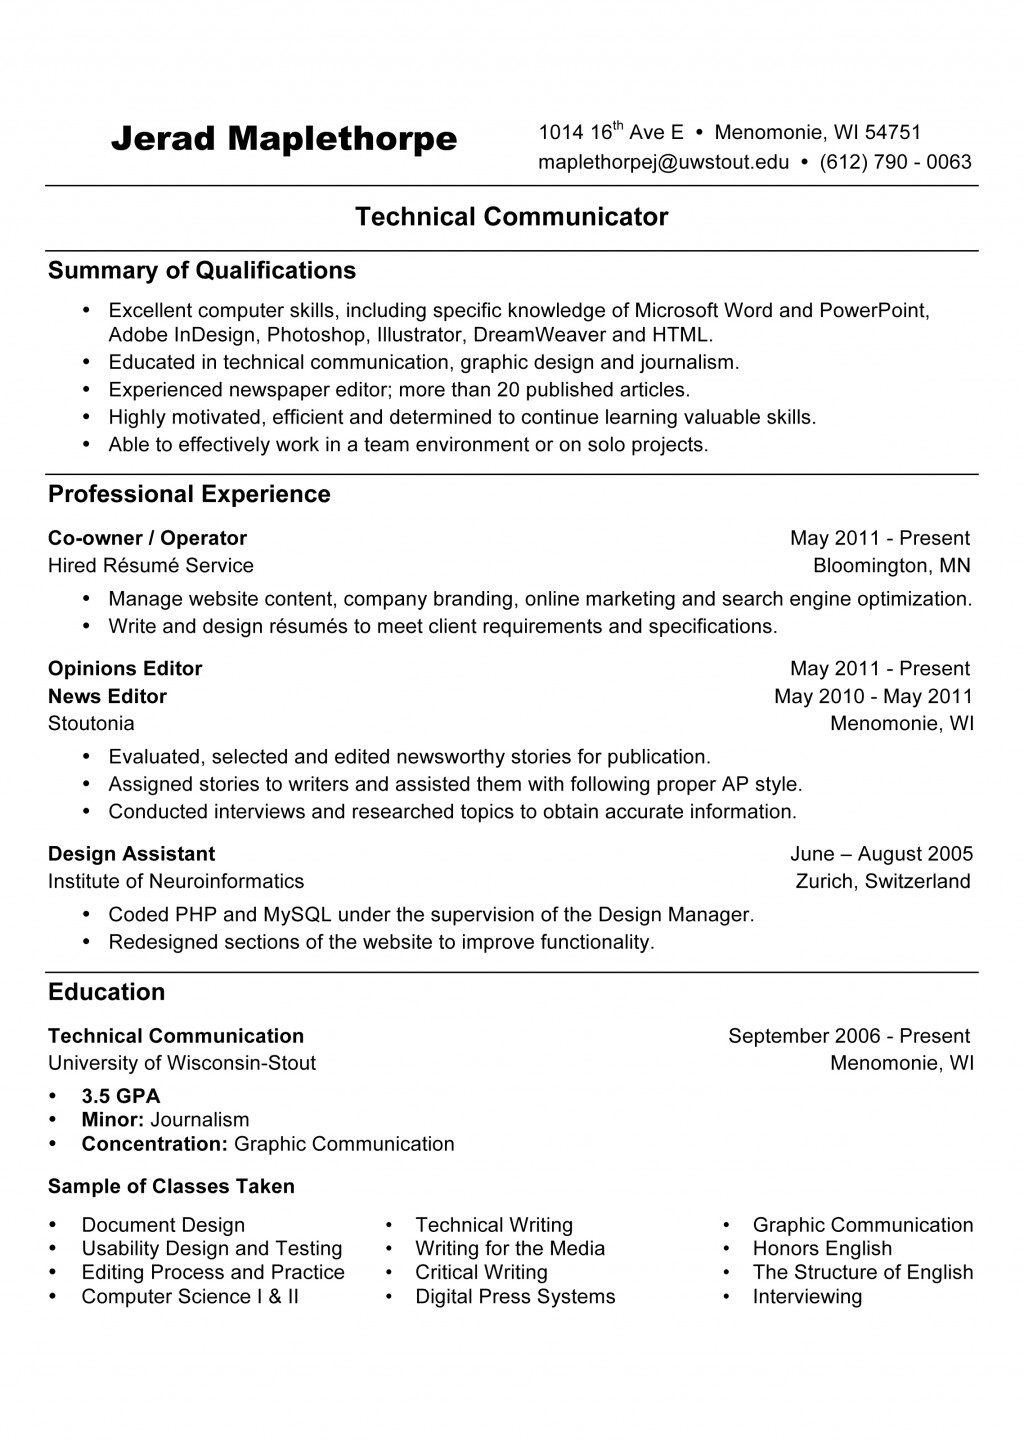 Should You Include References On Resume Résumé Writing References Available Upon Request